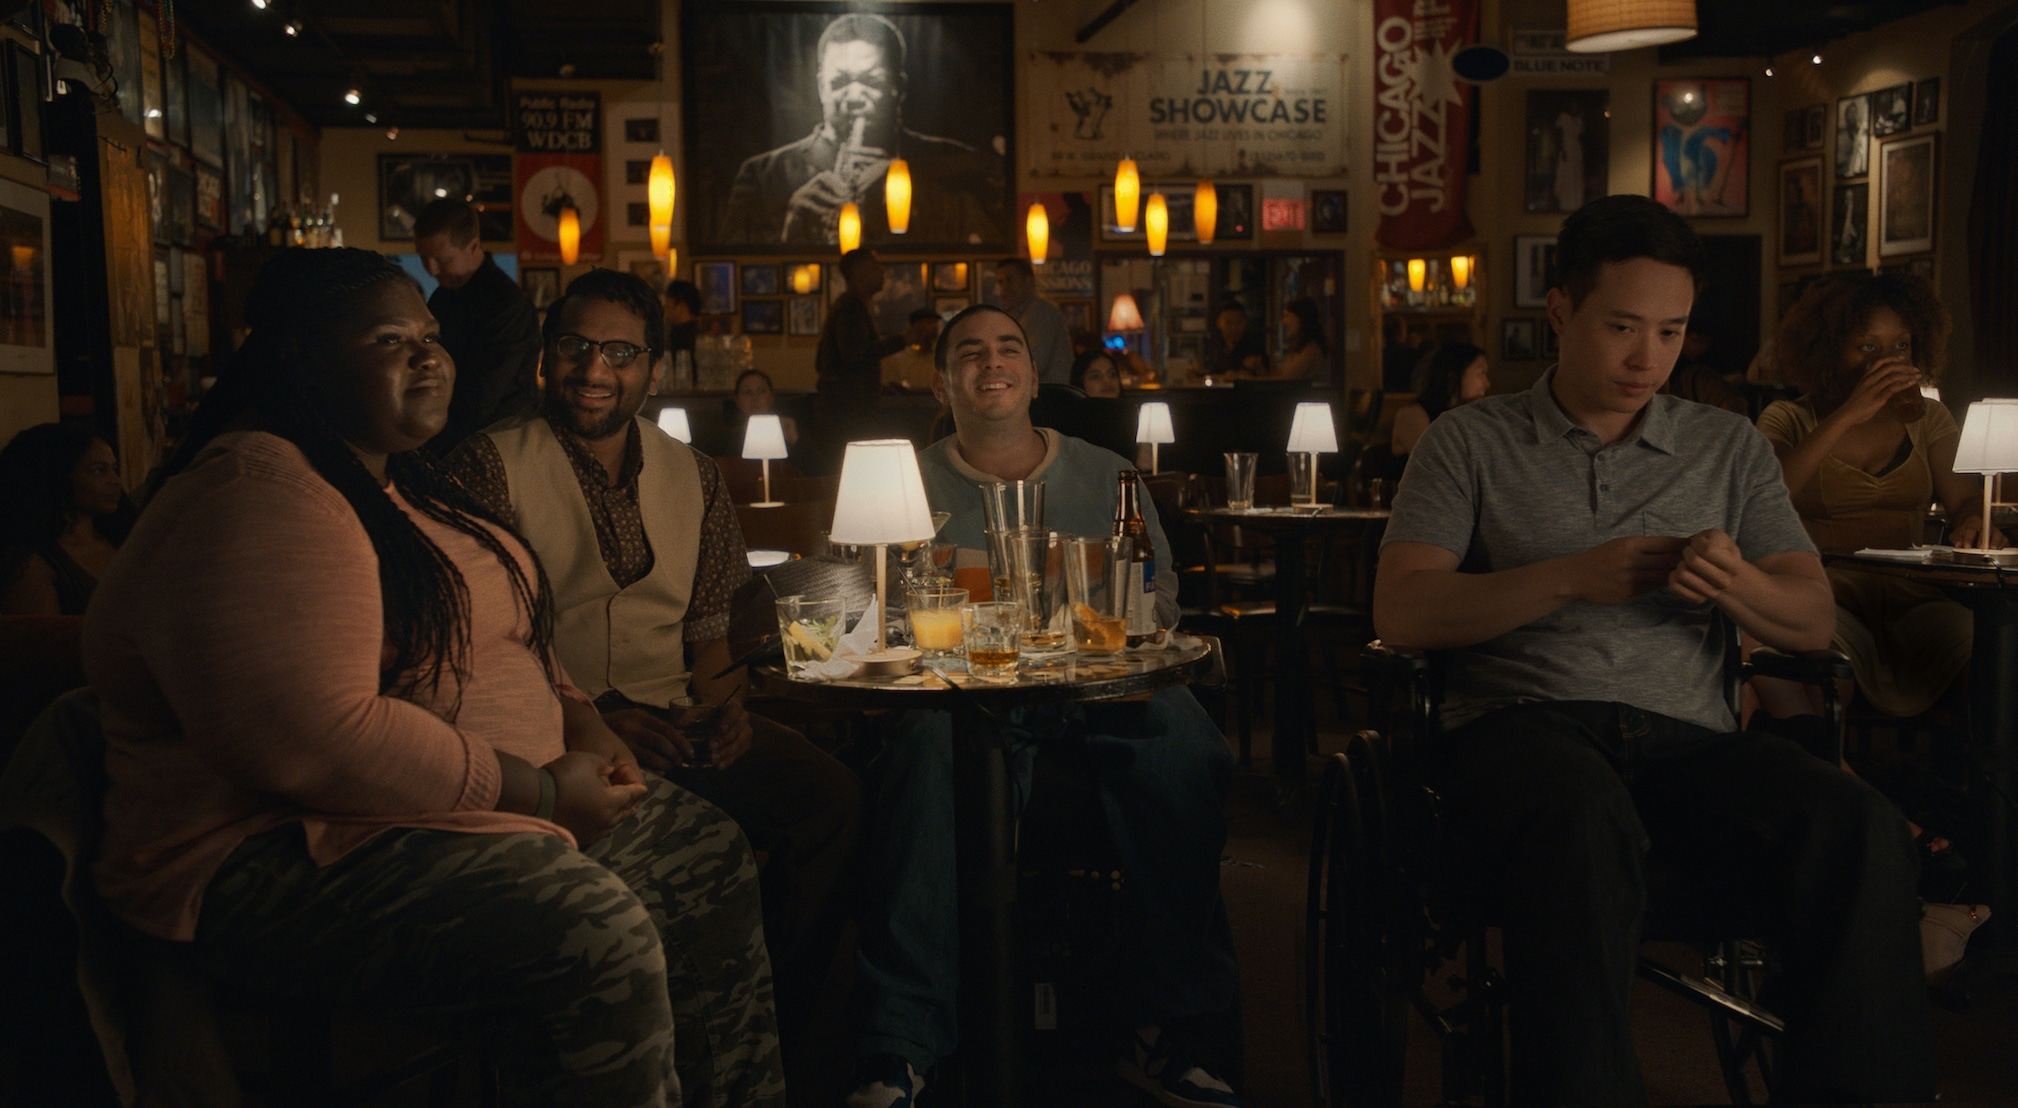 Cast of Come As You Are in bar seated around a table